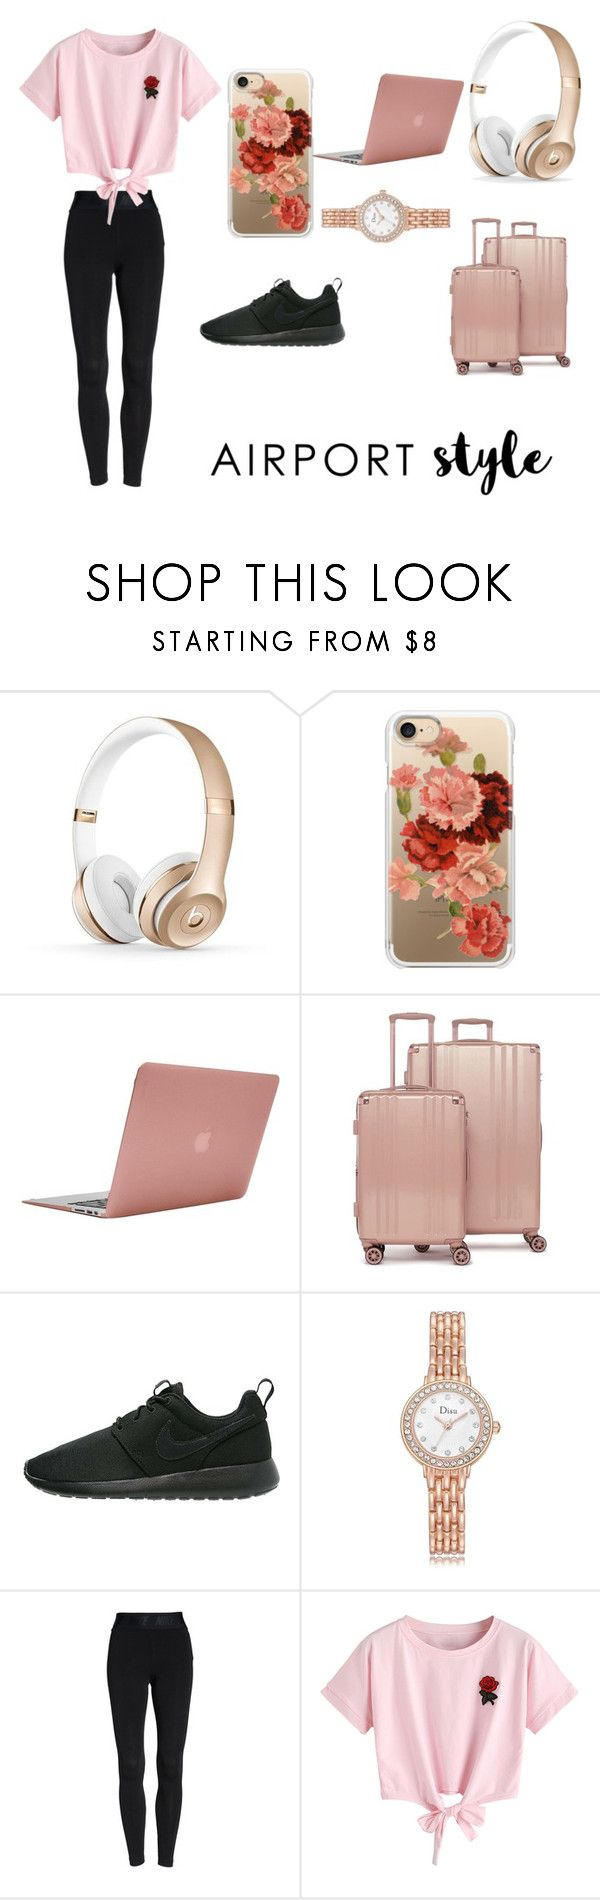 """""""Untitled #5"""" by vicente83112 ❤ liked on Polyvore featuring Casetify, Incase, CalPak, NIKE, WithChic and airportstyle"""